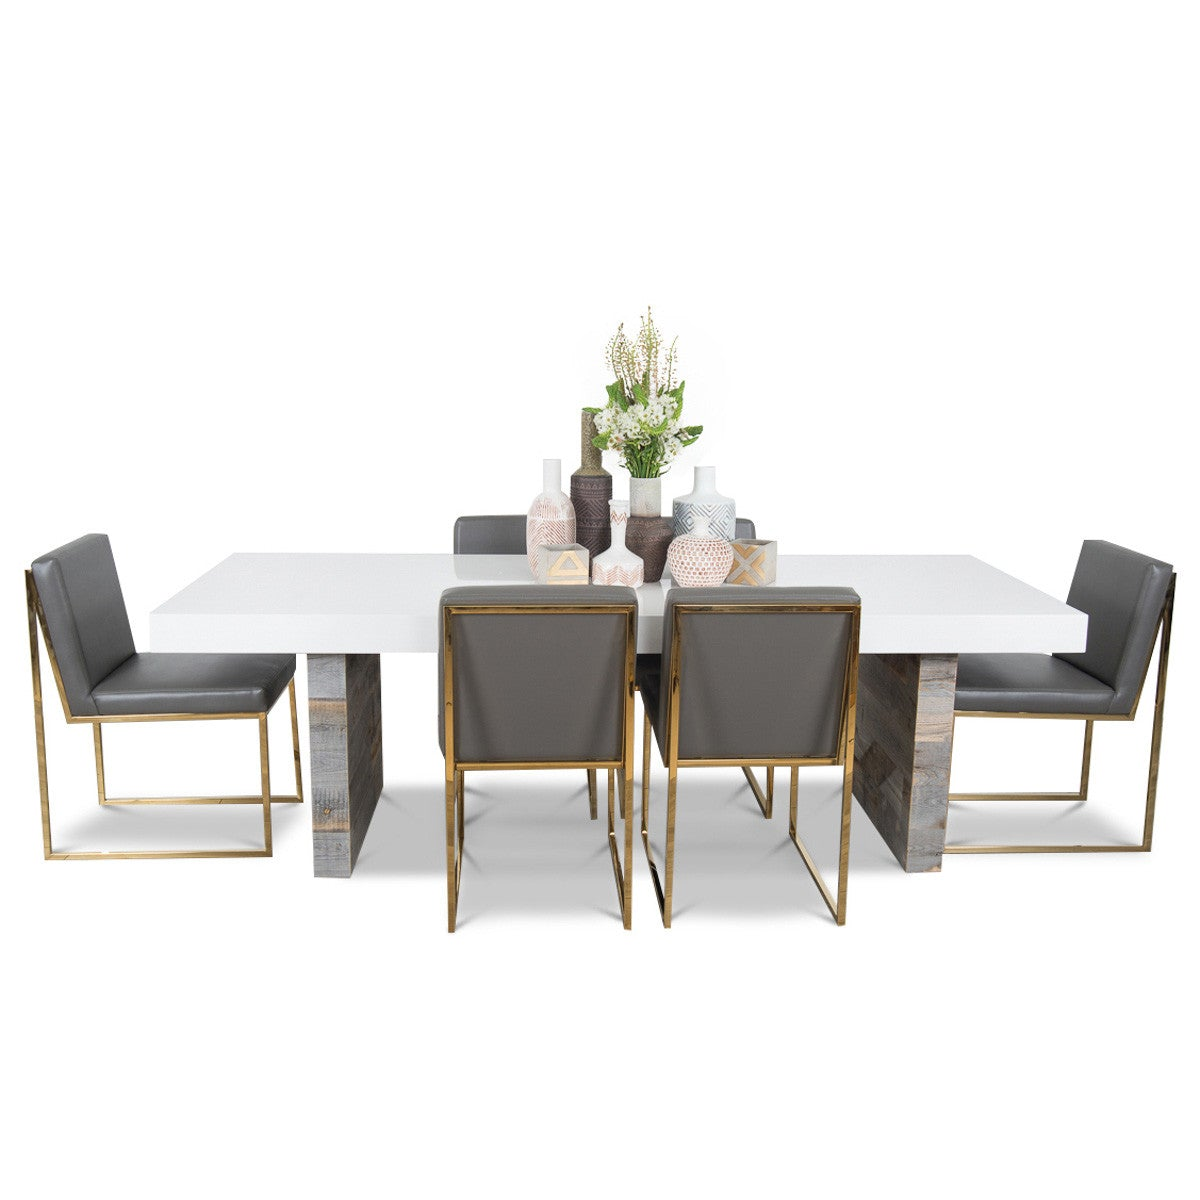 Cody 3 Dining Table - ModShop1.com